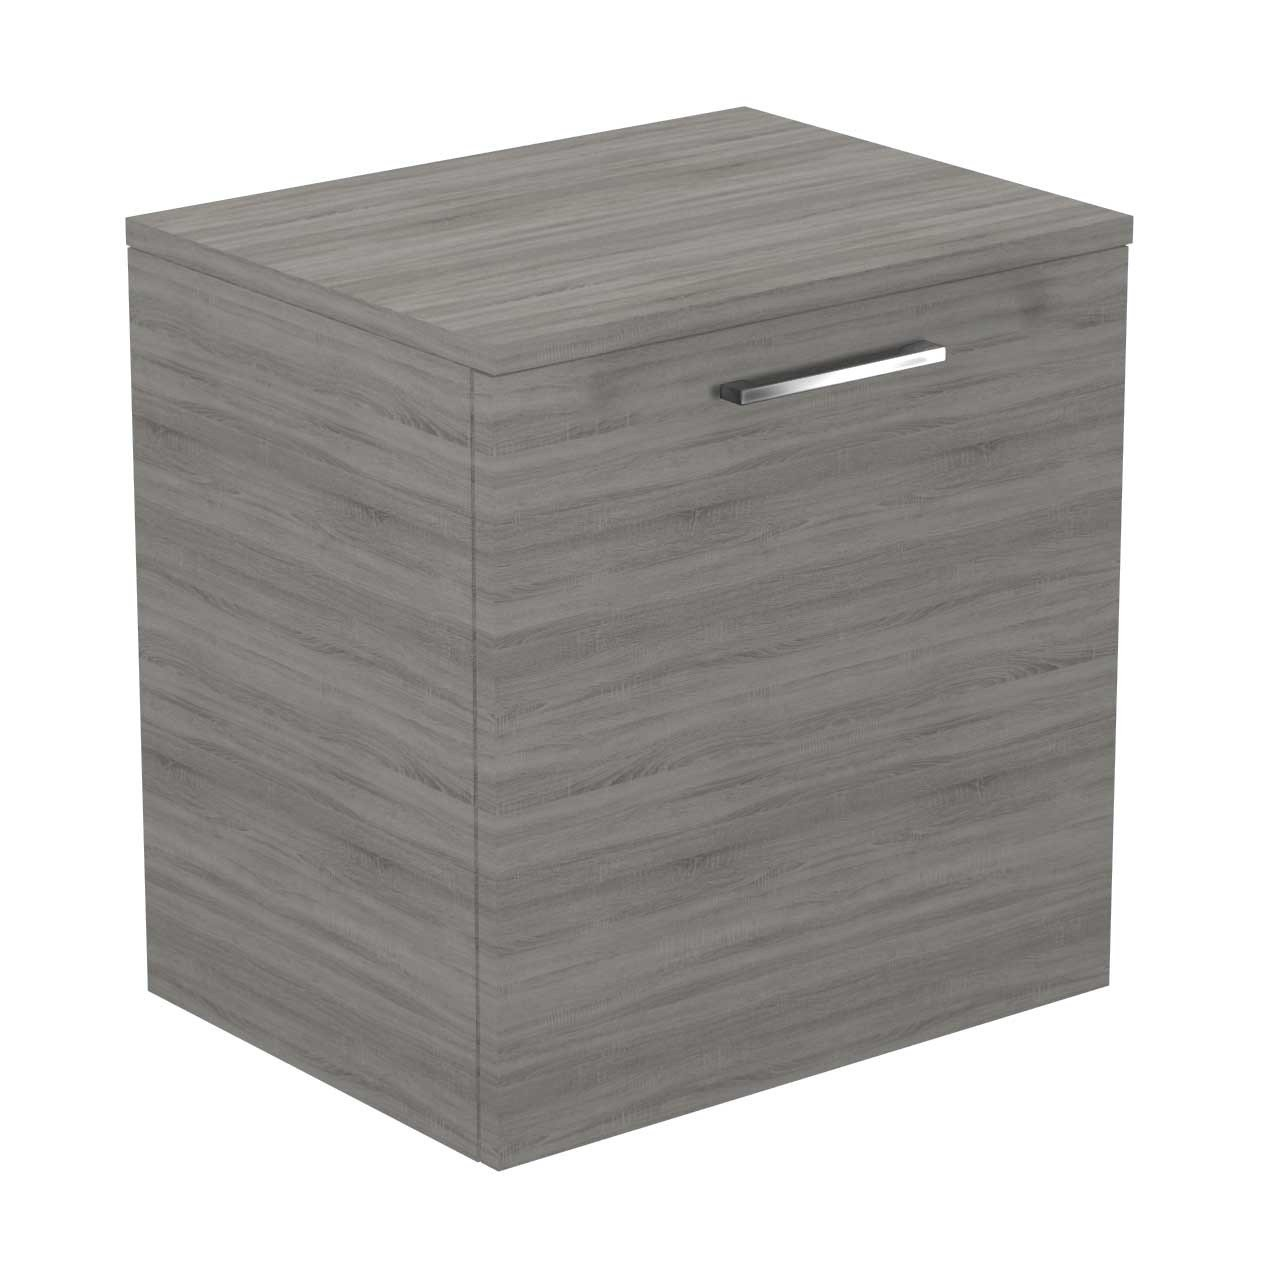 Napoli Molina Ash 500mm Wall Mounted 1 Drawer Vanity Unit With Top